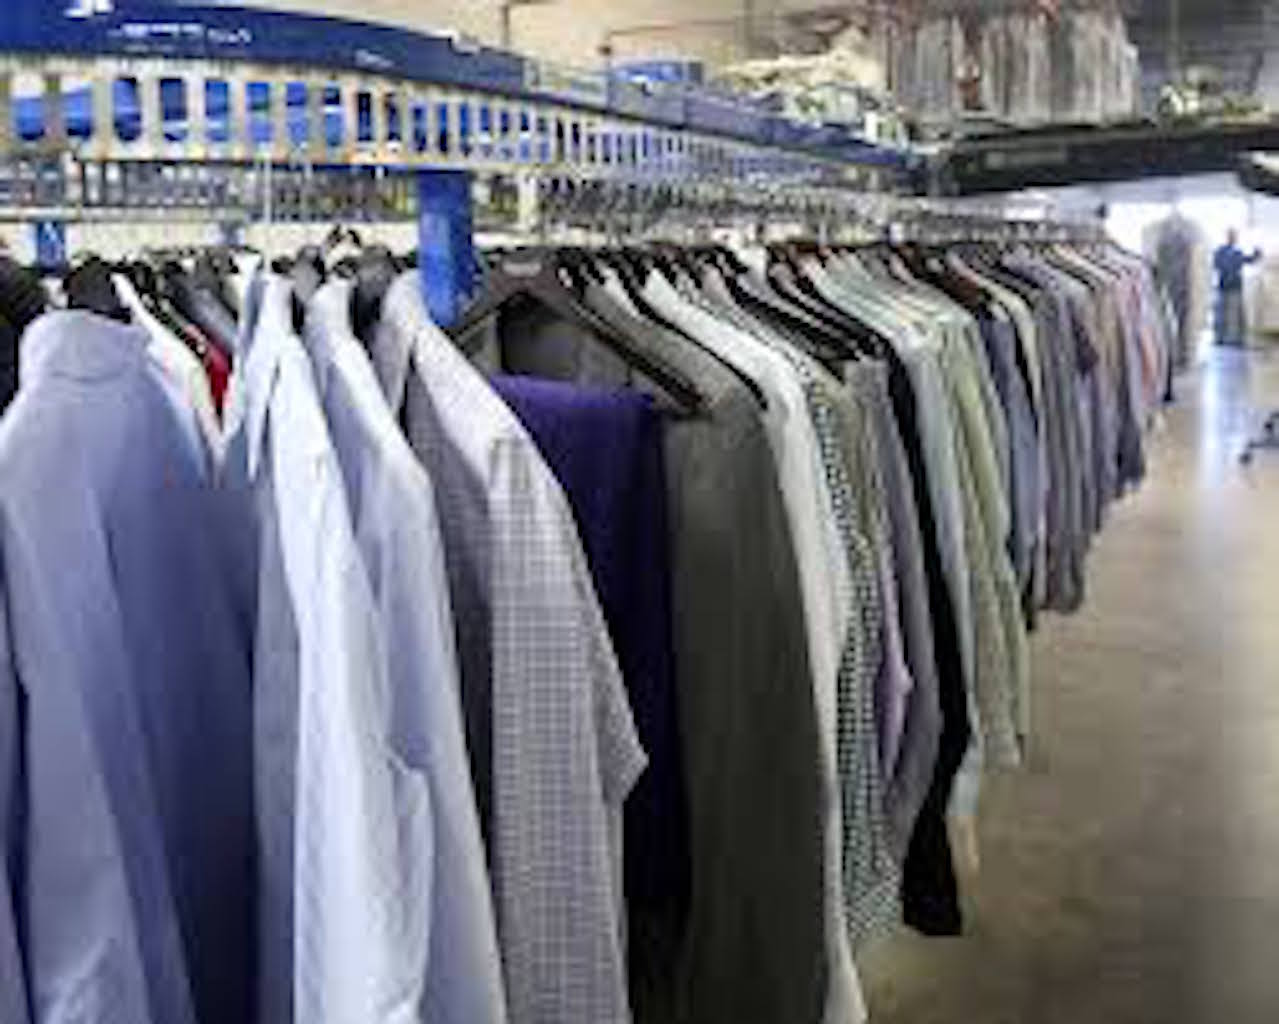 **SOLD**Profitable Dry Cleaners in Solid Market Image  Businesses for Sale Image